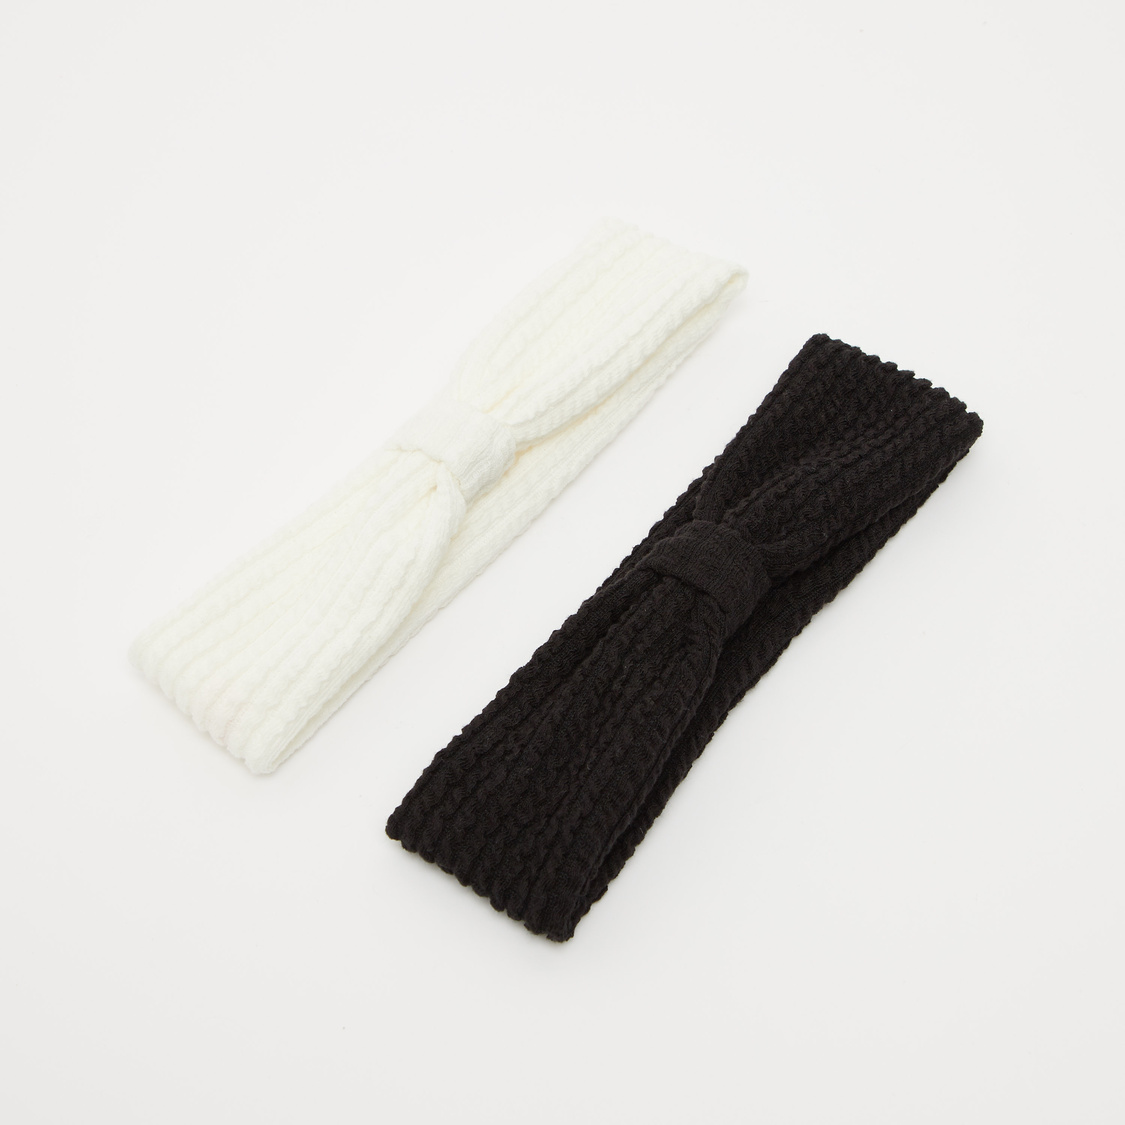 Set of 2 - Textured Headband with Knot Detail